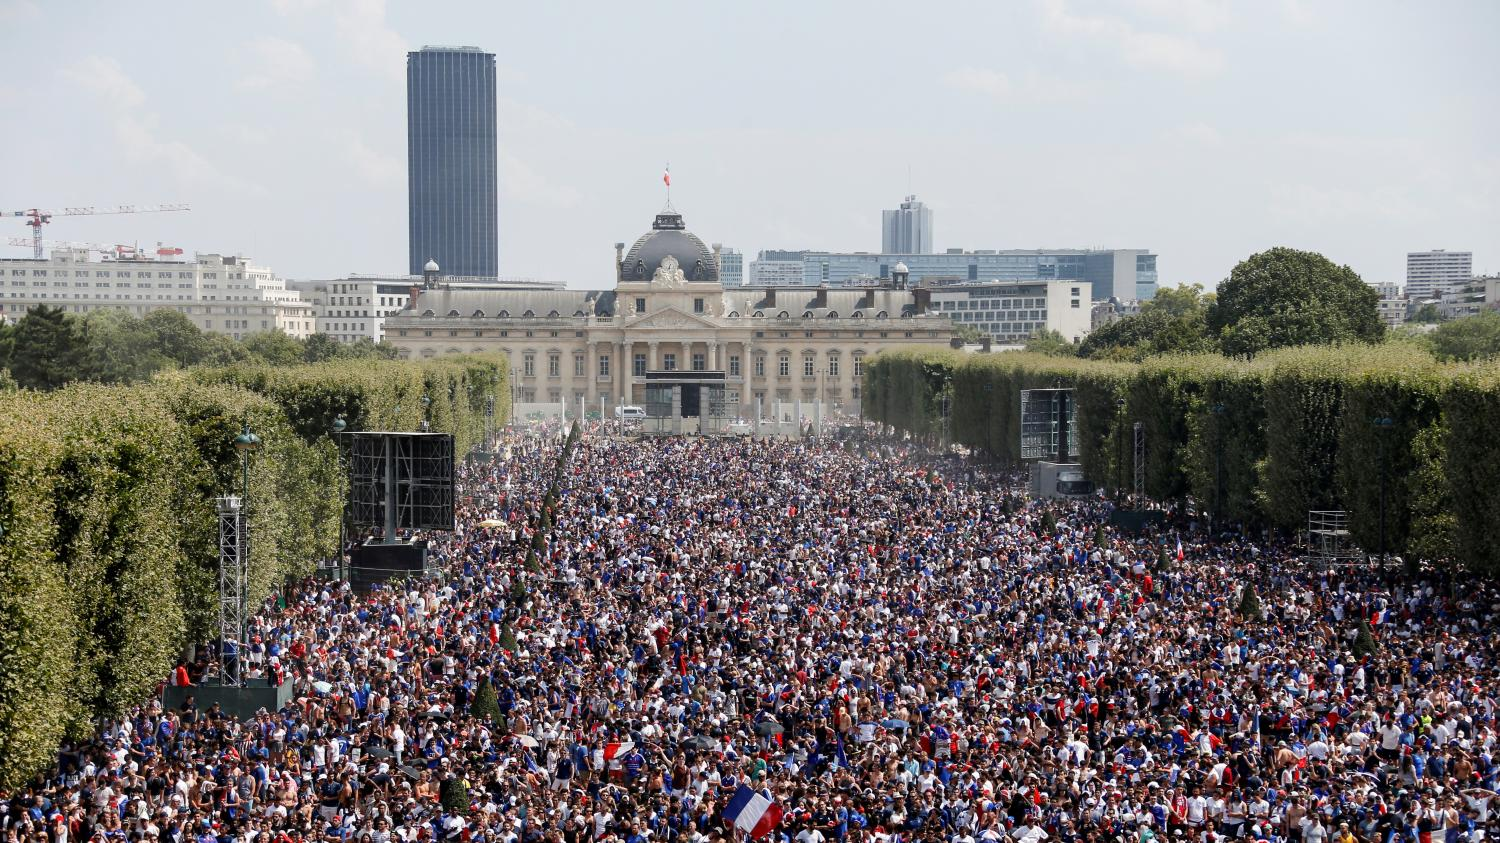 coupe du monde 2018 le champ de mars envahi par 90 000 supporters paris. Black Bedroom Furniture Sets. Home Design Ideas